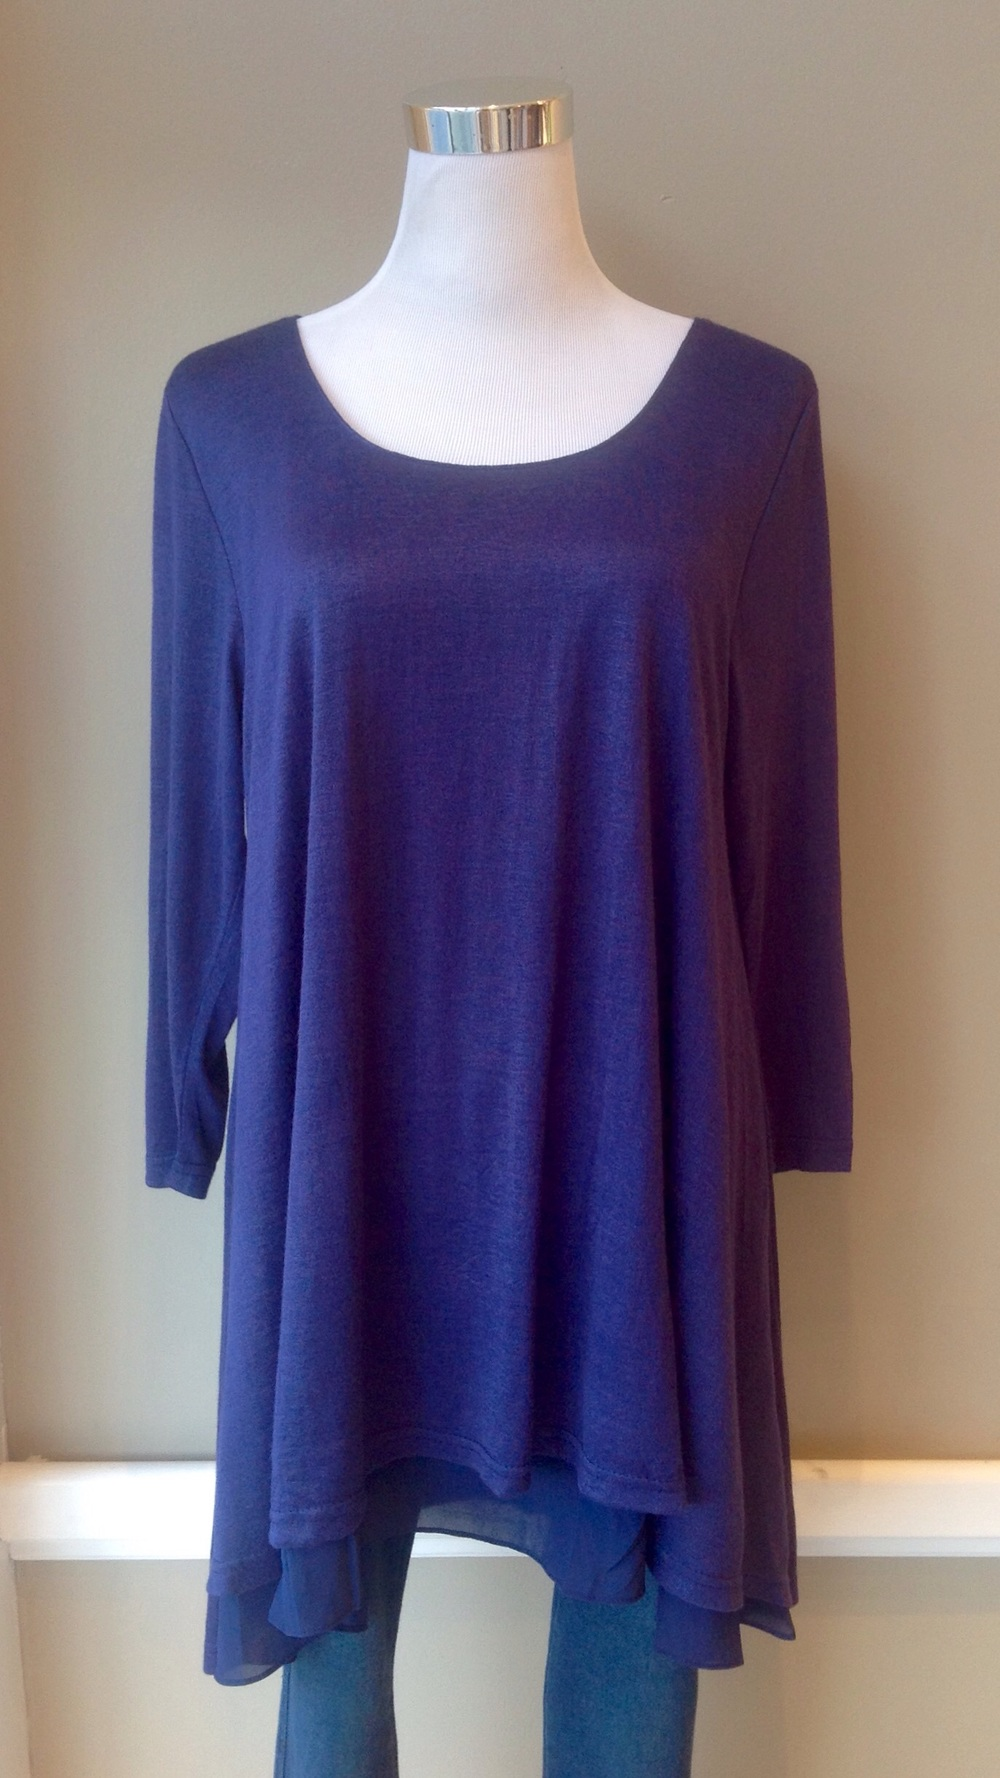 Layered lightweight tunic top in Royal Blue, $35